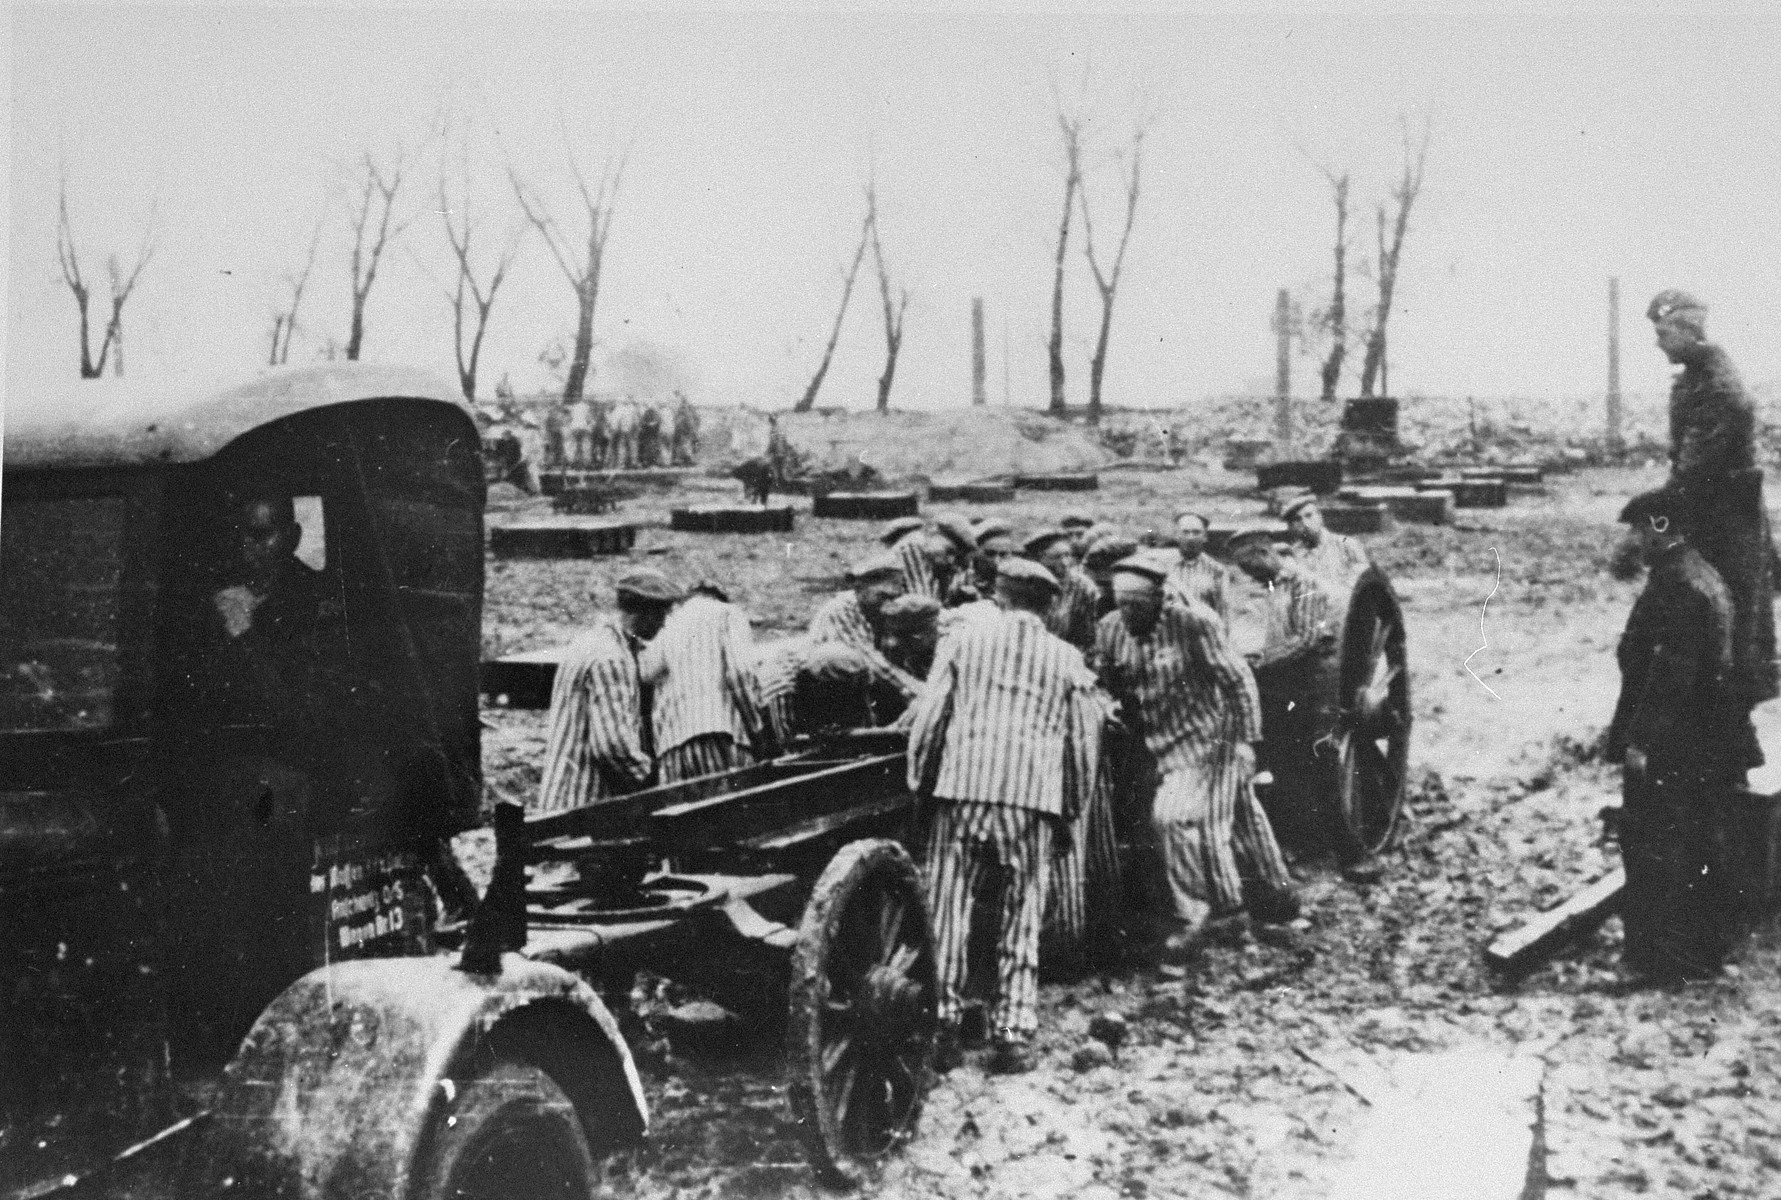 Prisoners at forced labor constructing the Krupp factory at Auschwitz.